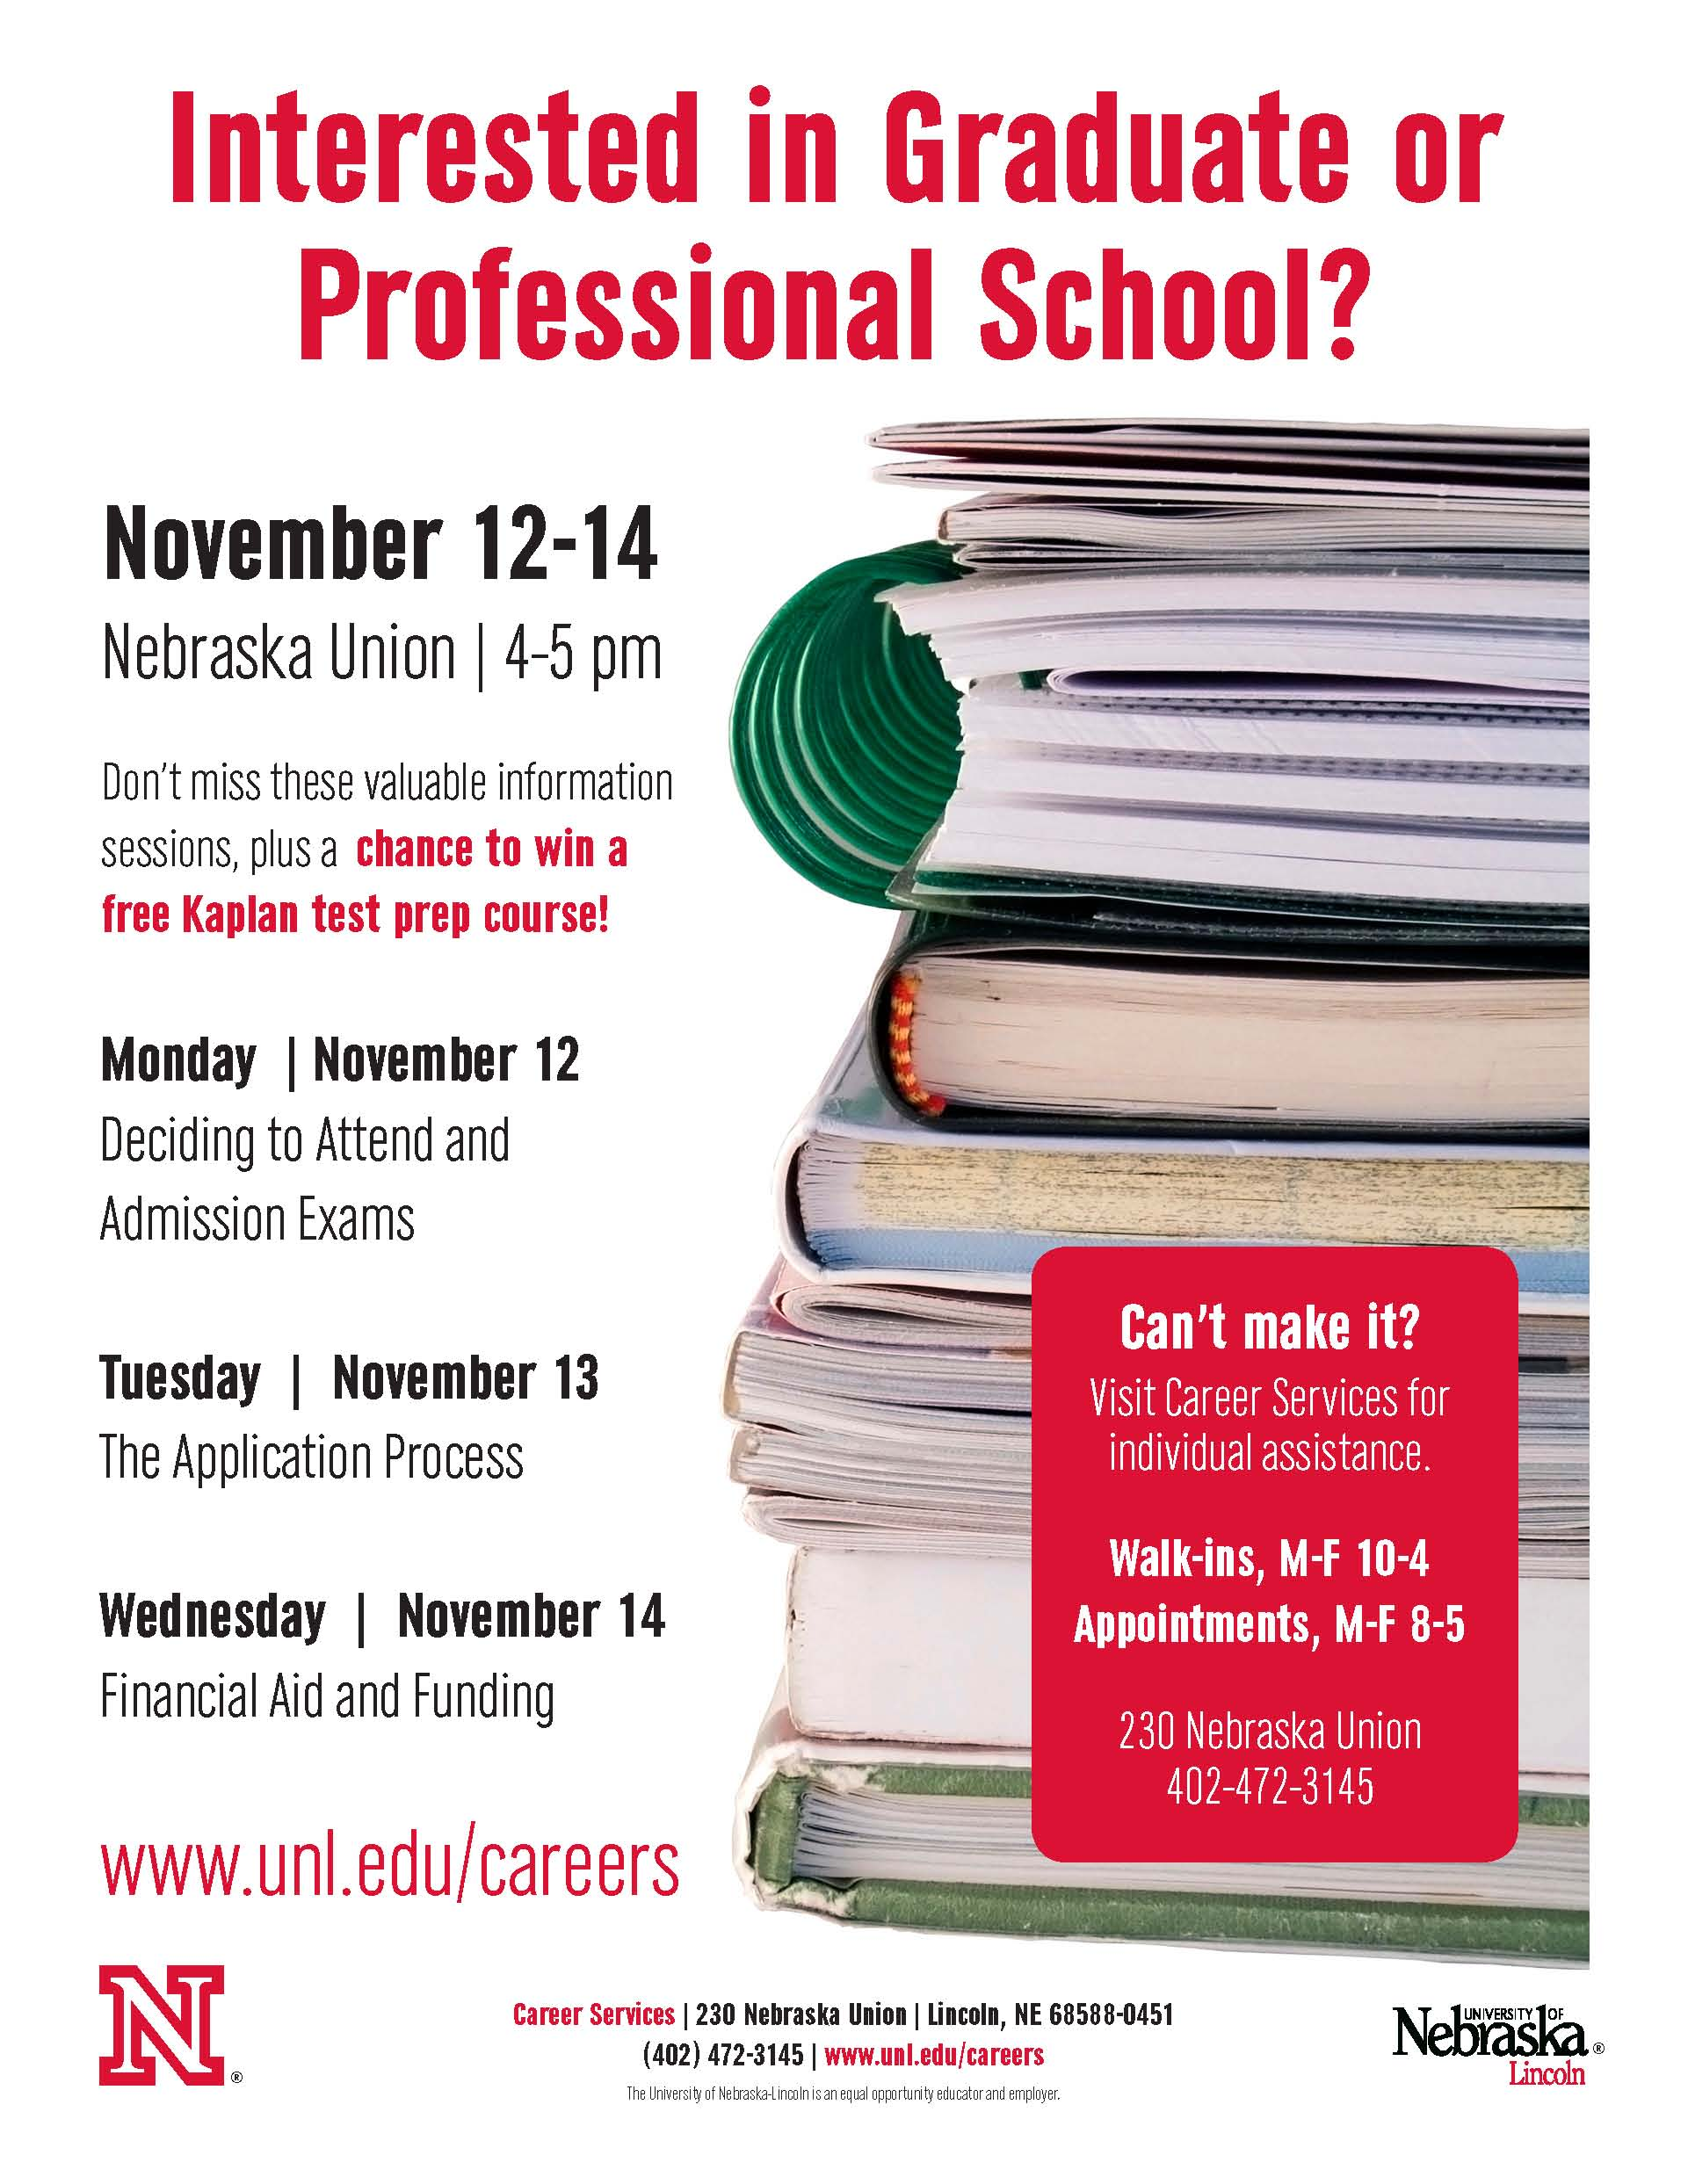 Learn about attending graduate or professional school at information sessions on November 12-14.